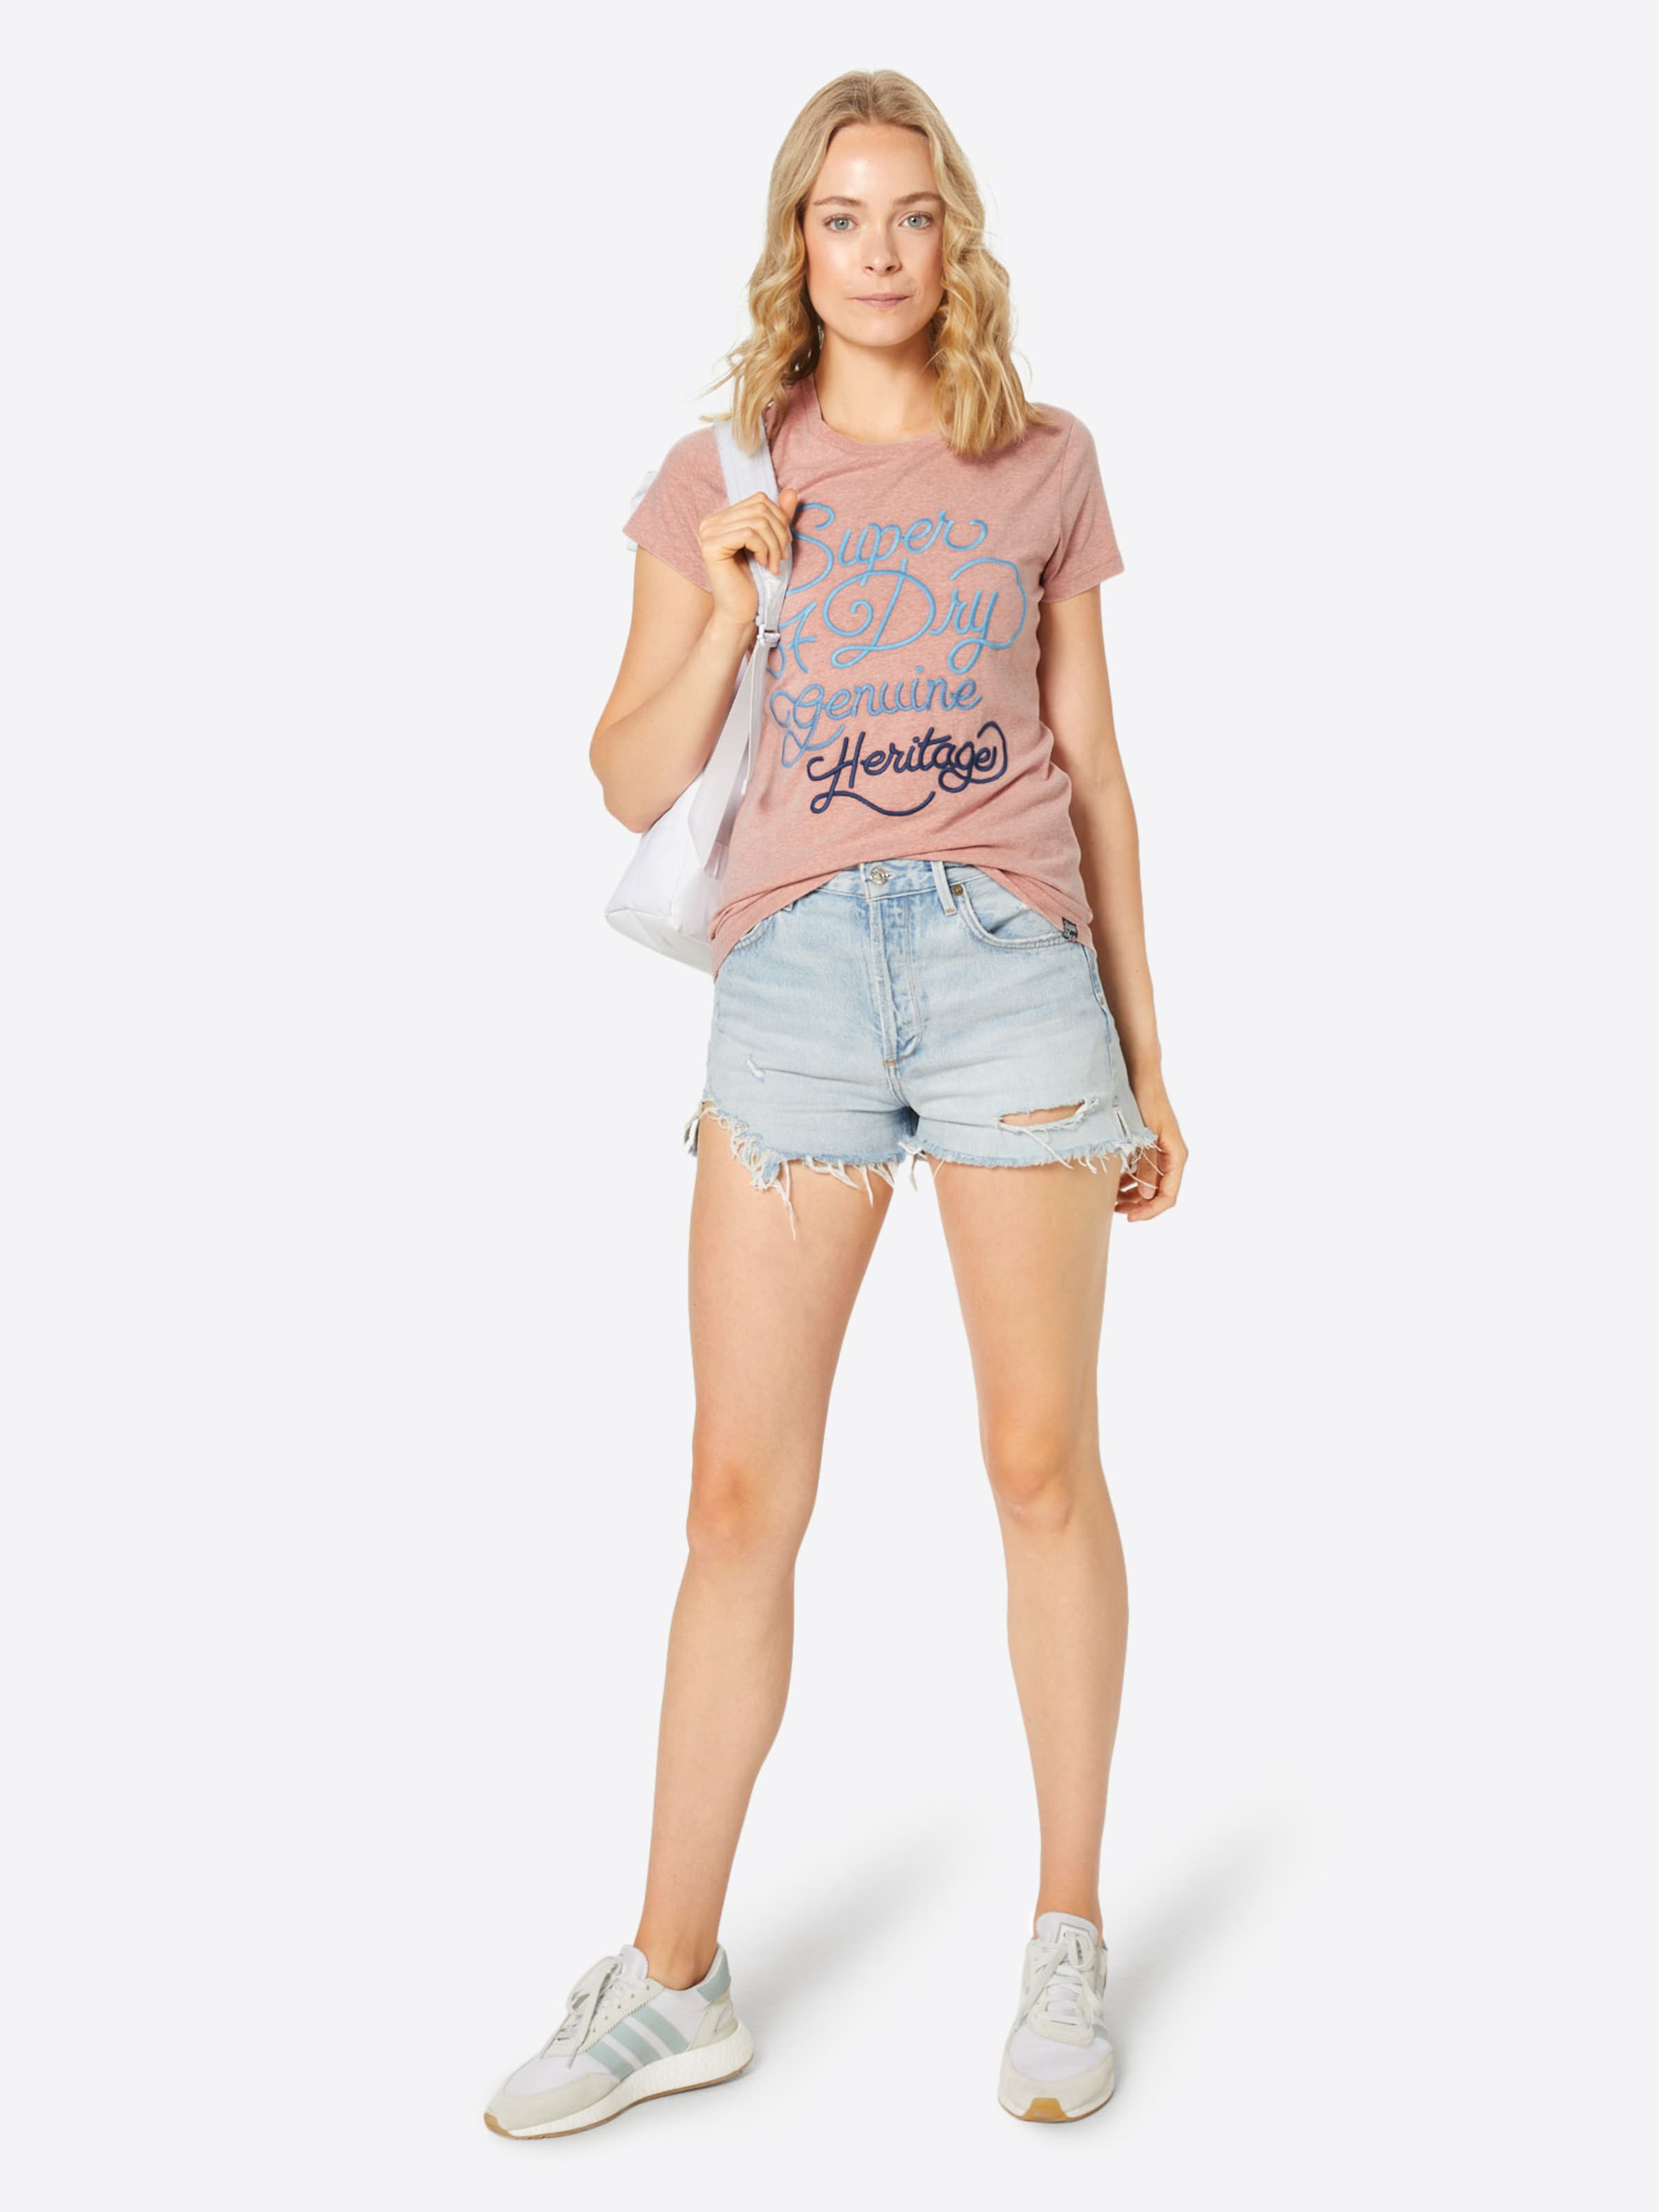 Superdry '67 Tee' Shirt Fade Genuine T Embroidery BlauRosé Entry In SUzMqGVp